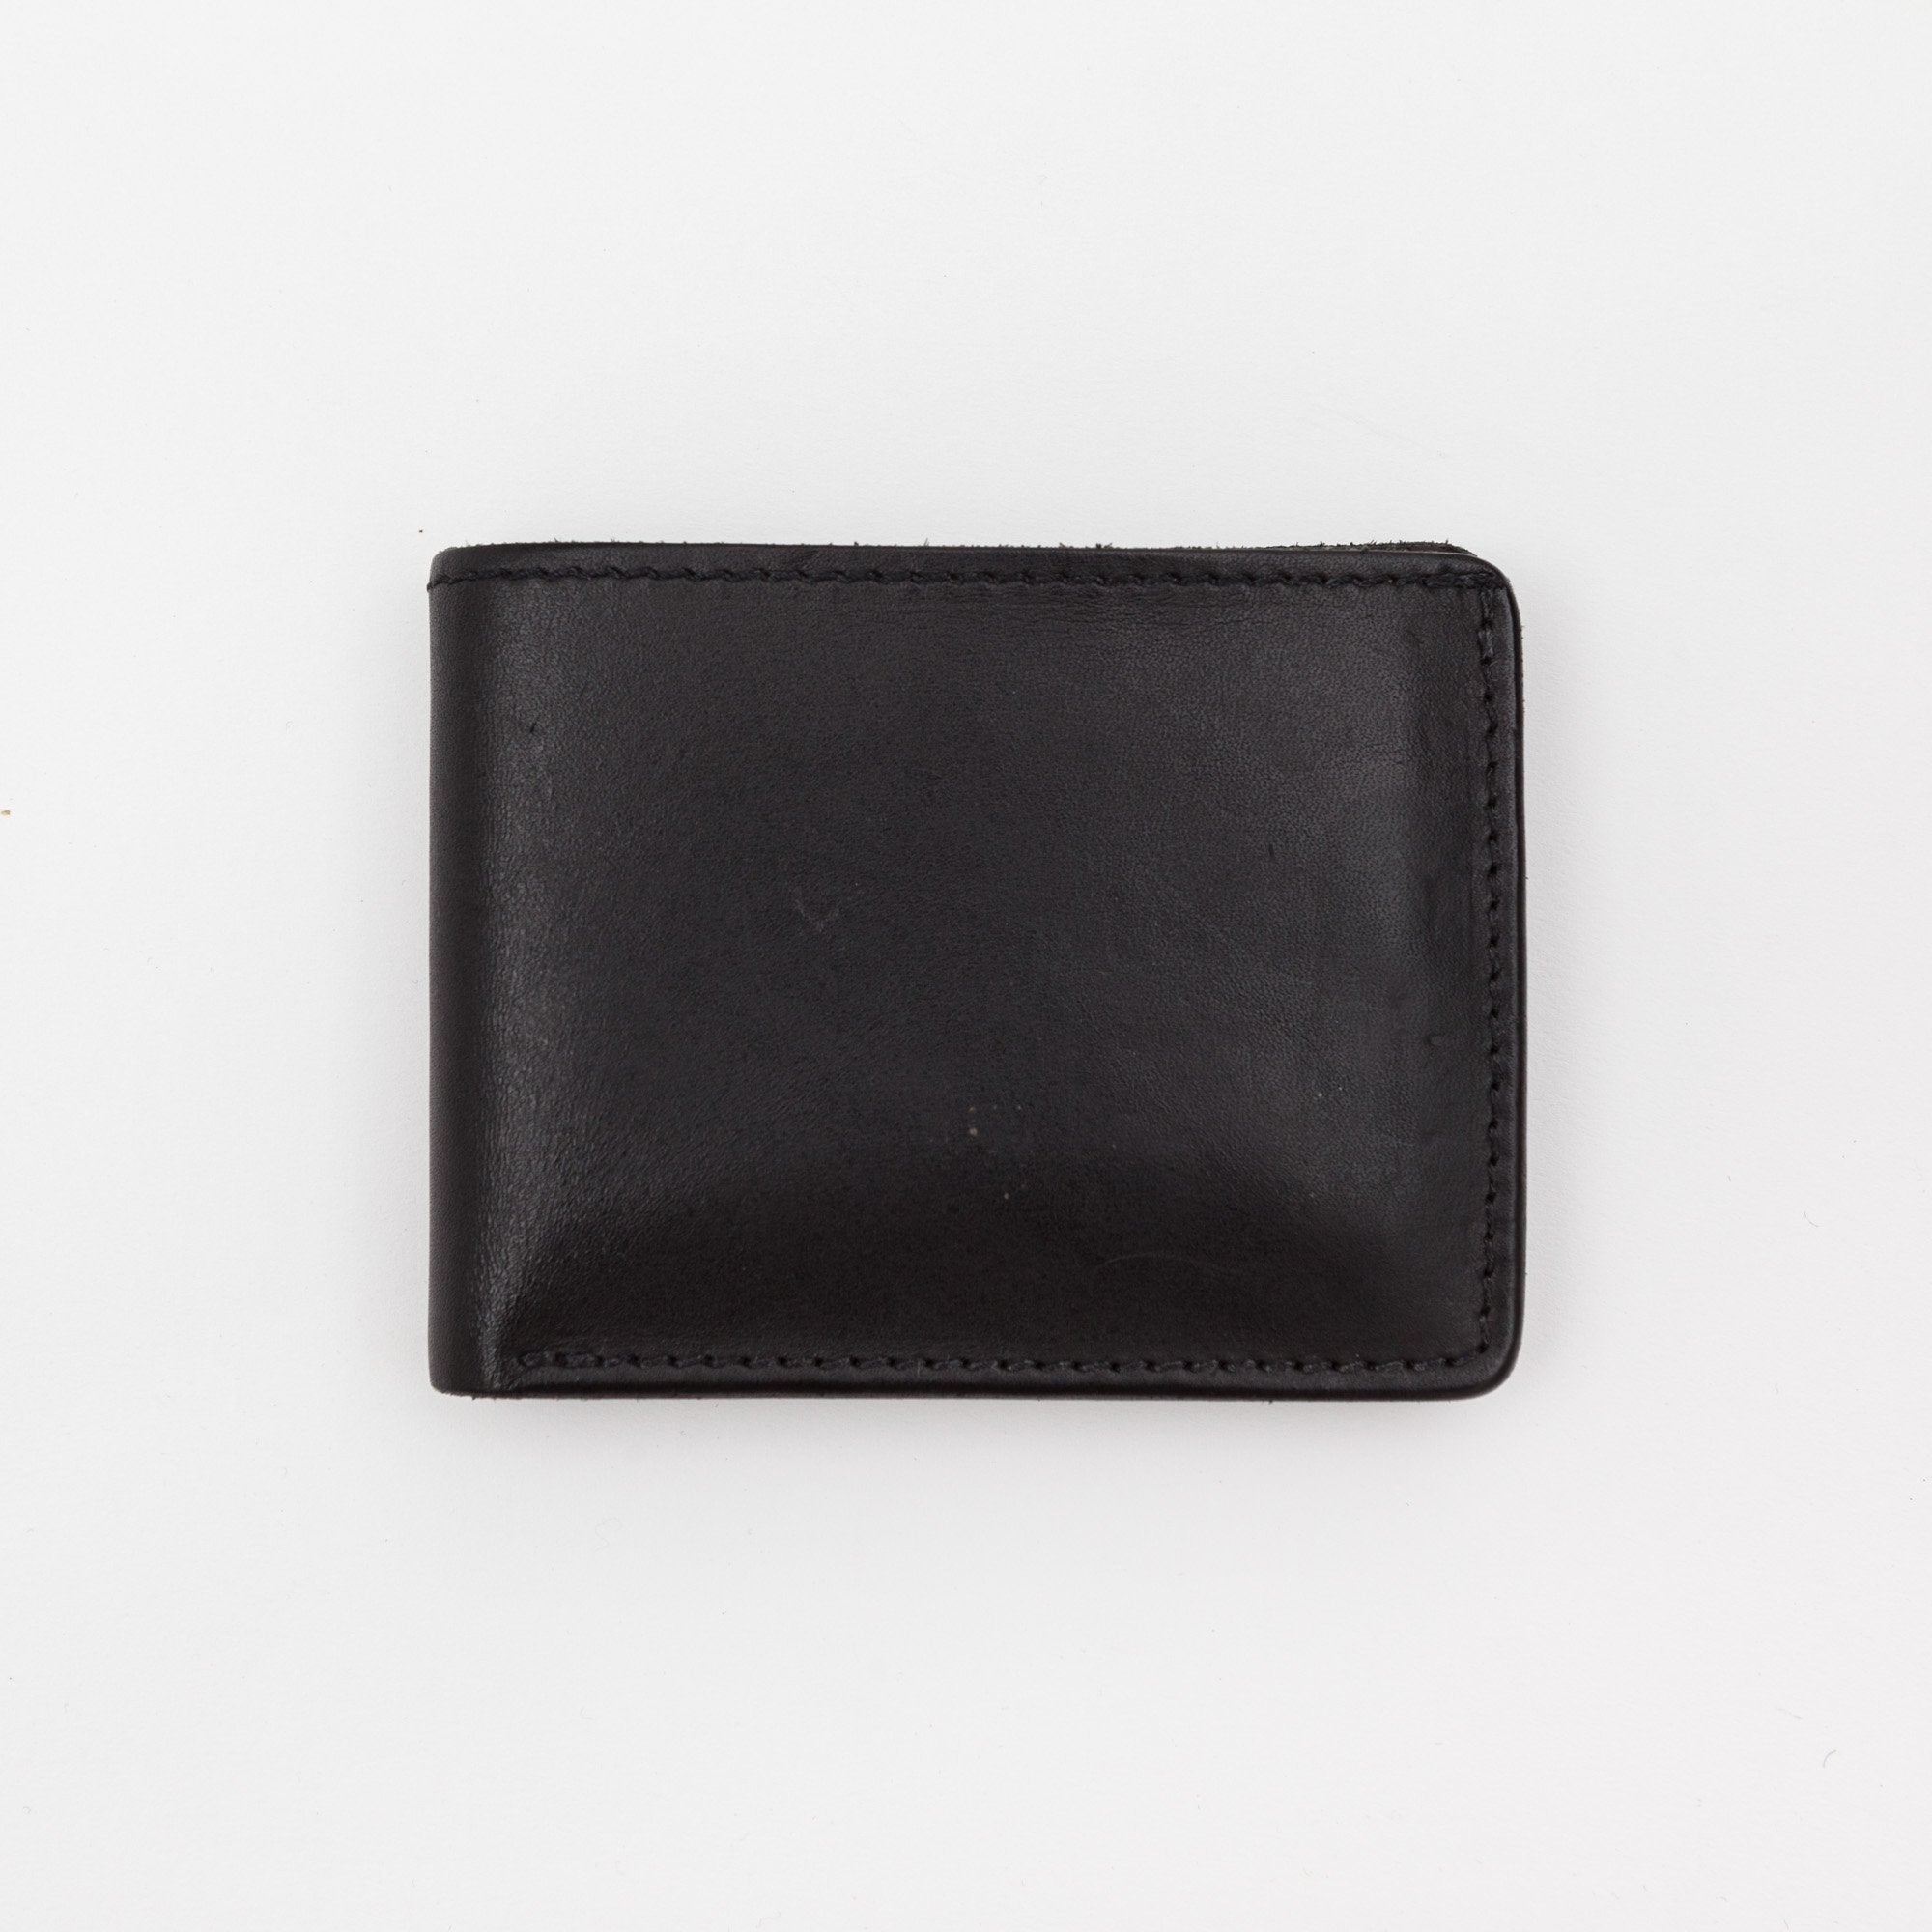 Tanner Goods Leather Utility Bifold Wallet